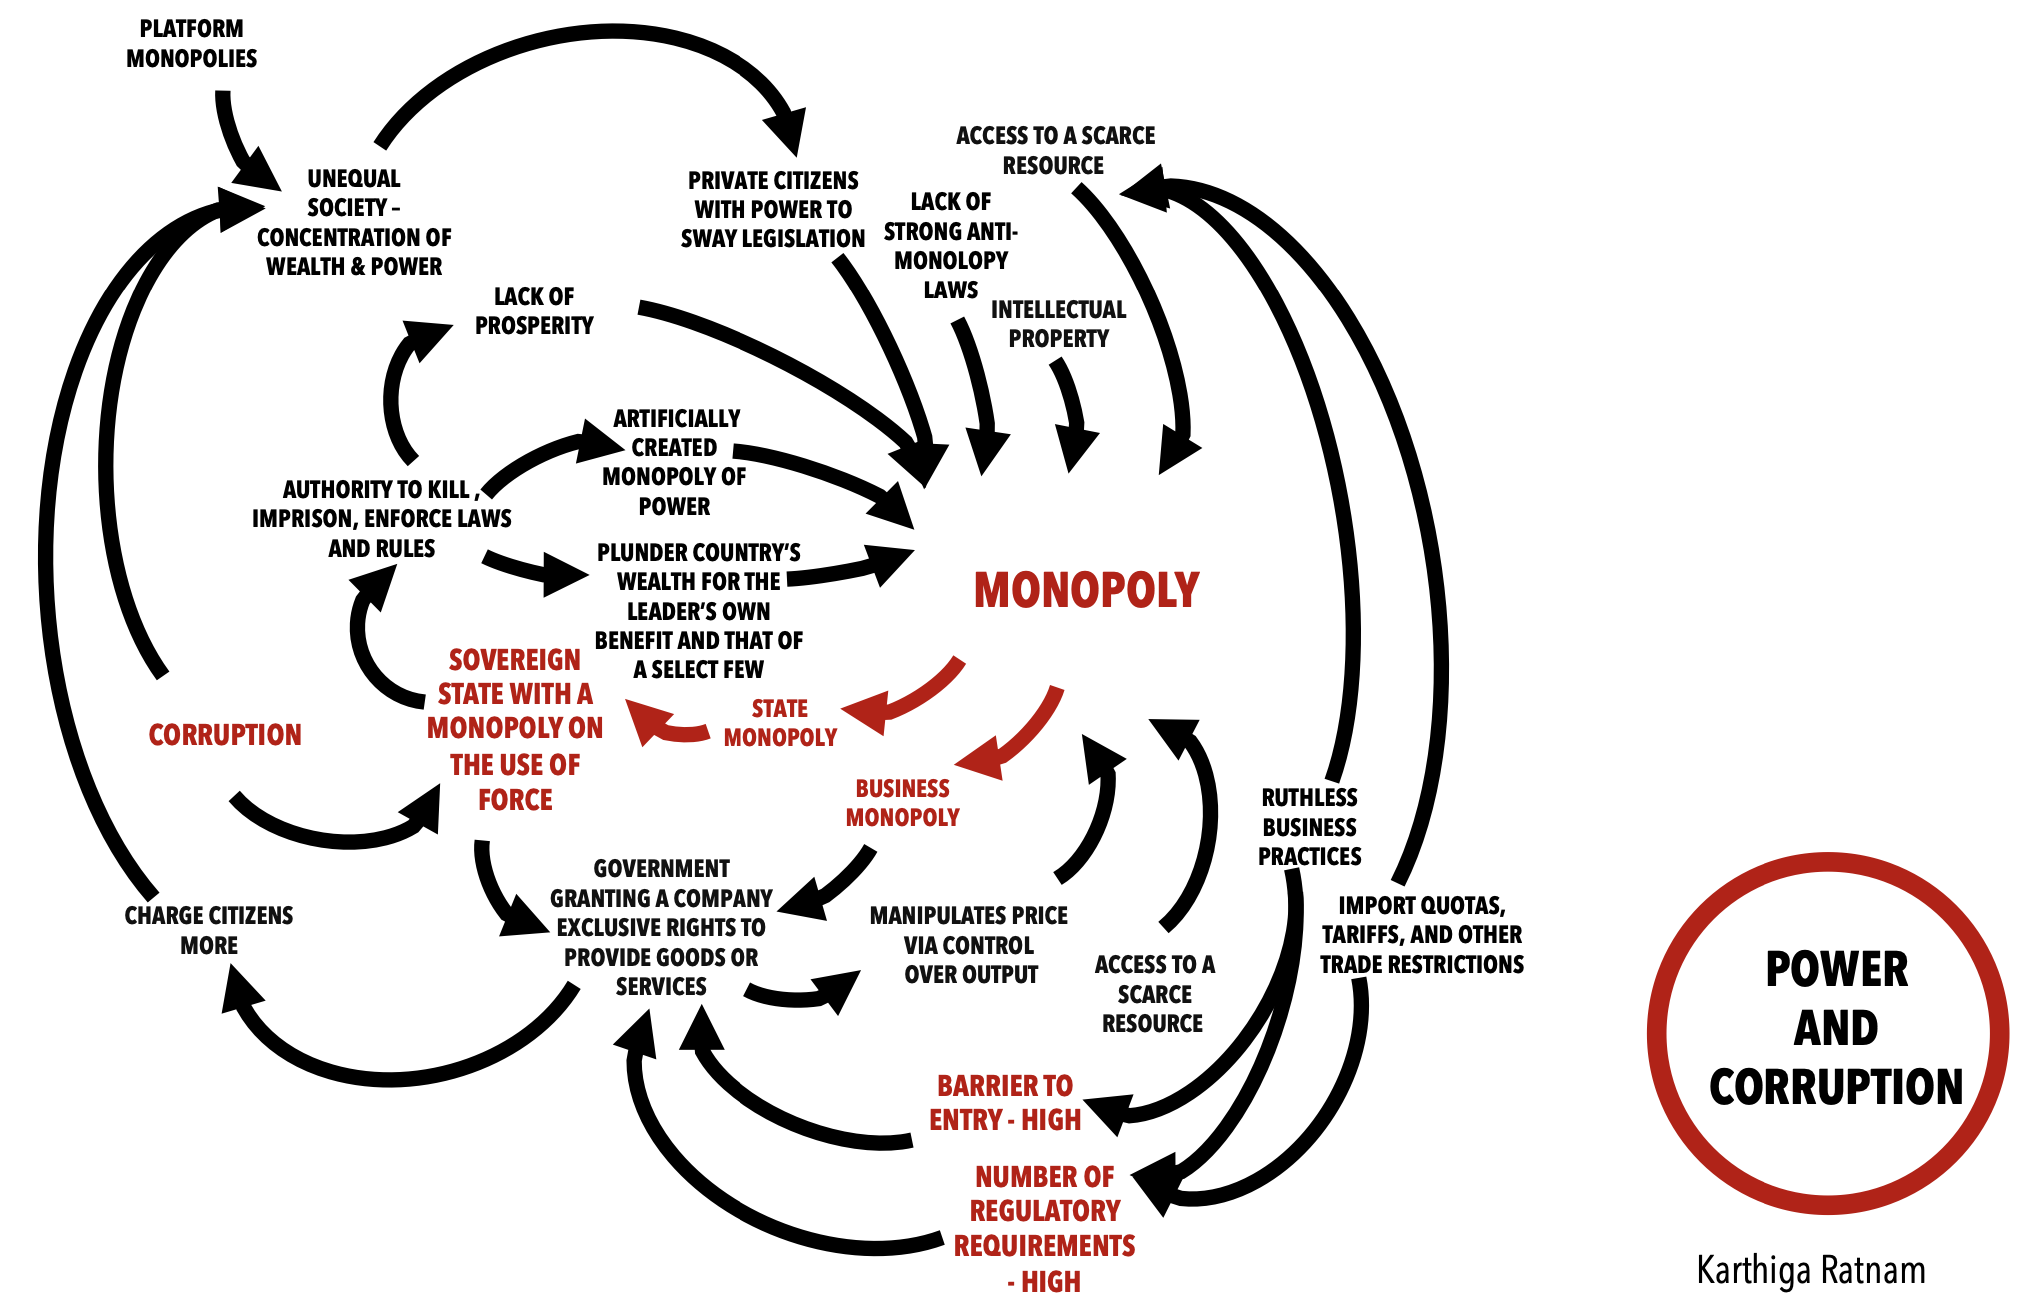 State Monopoly and Business Monopoly